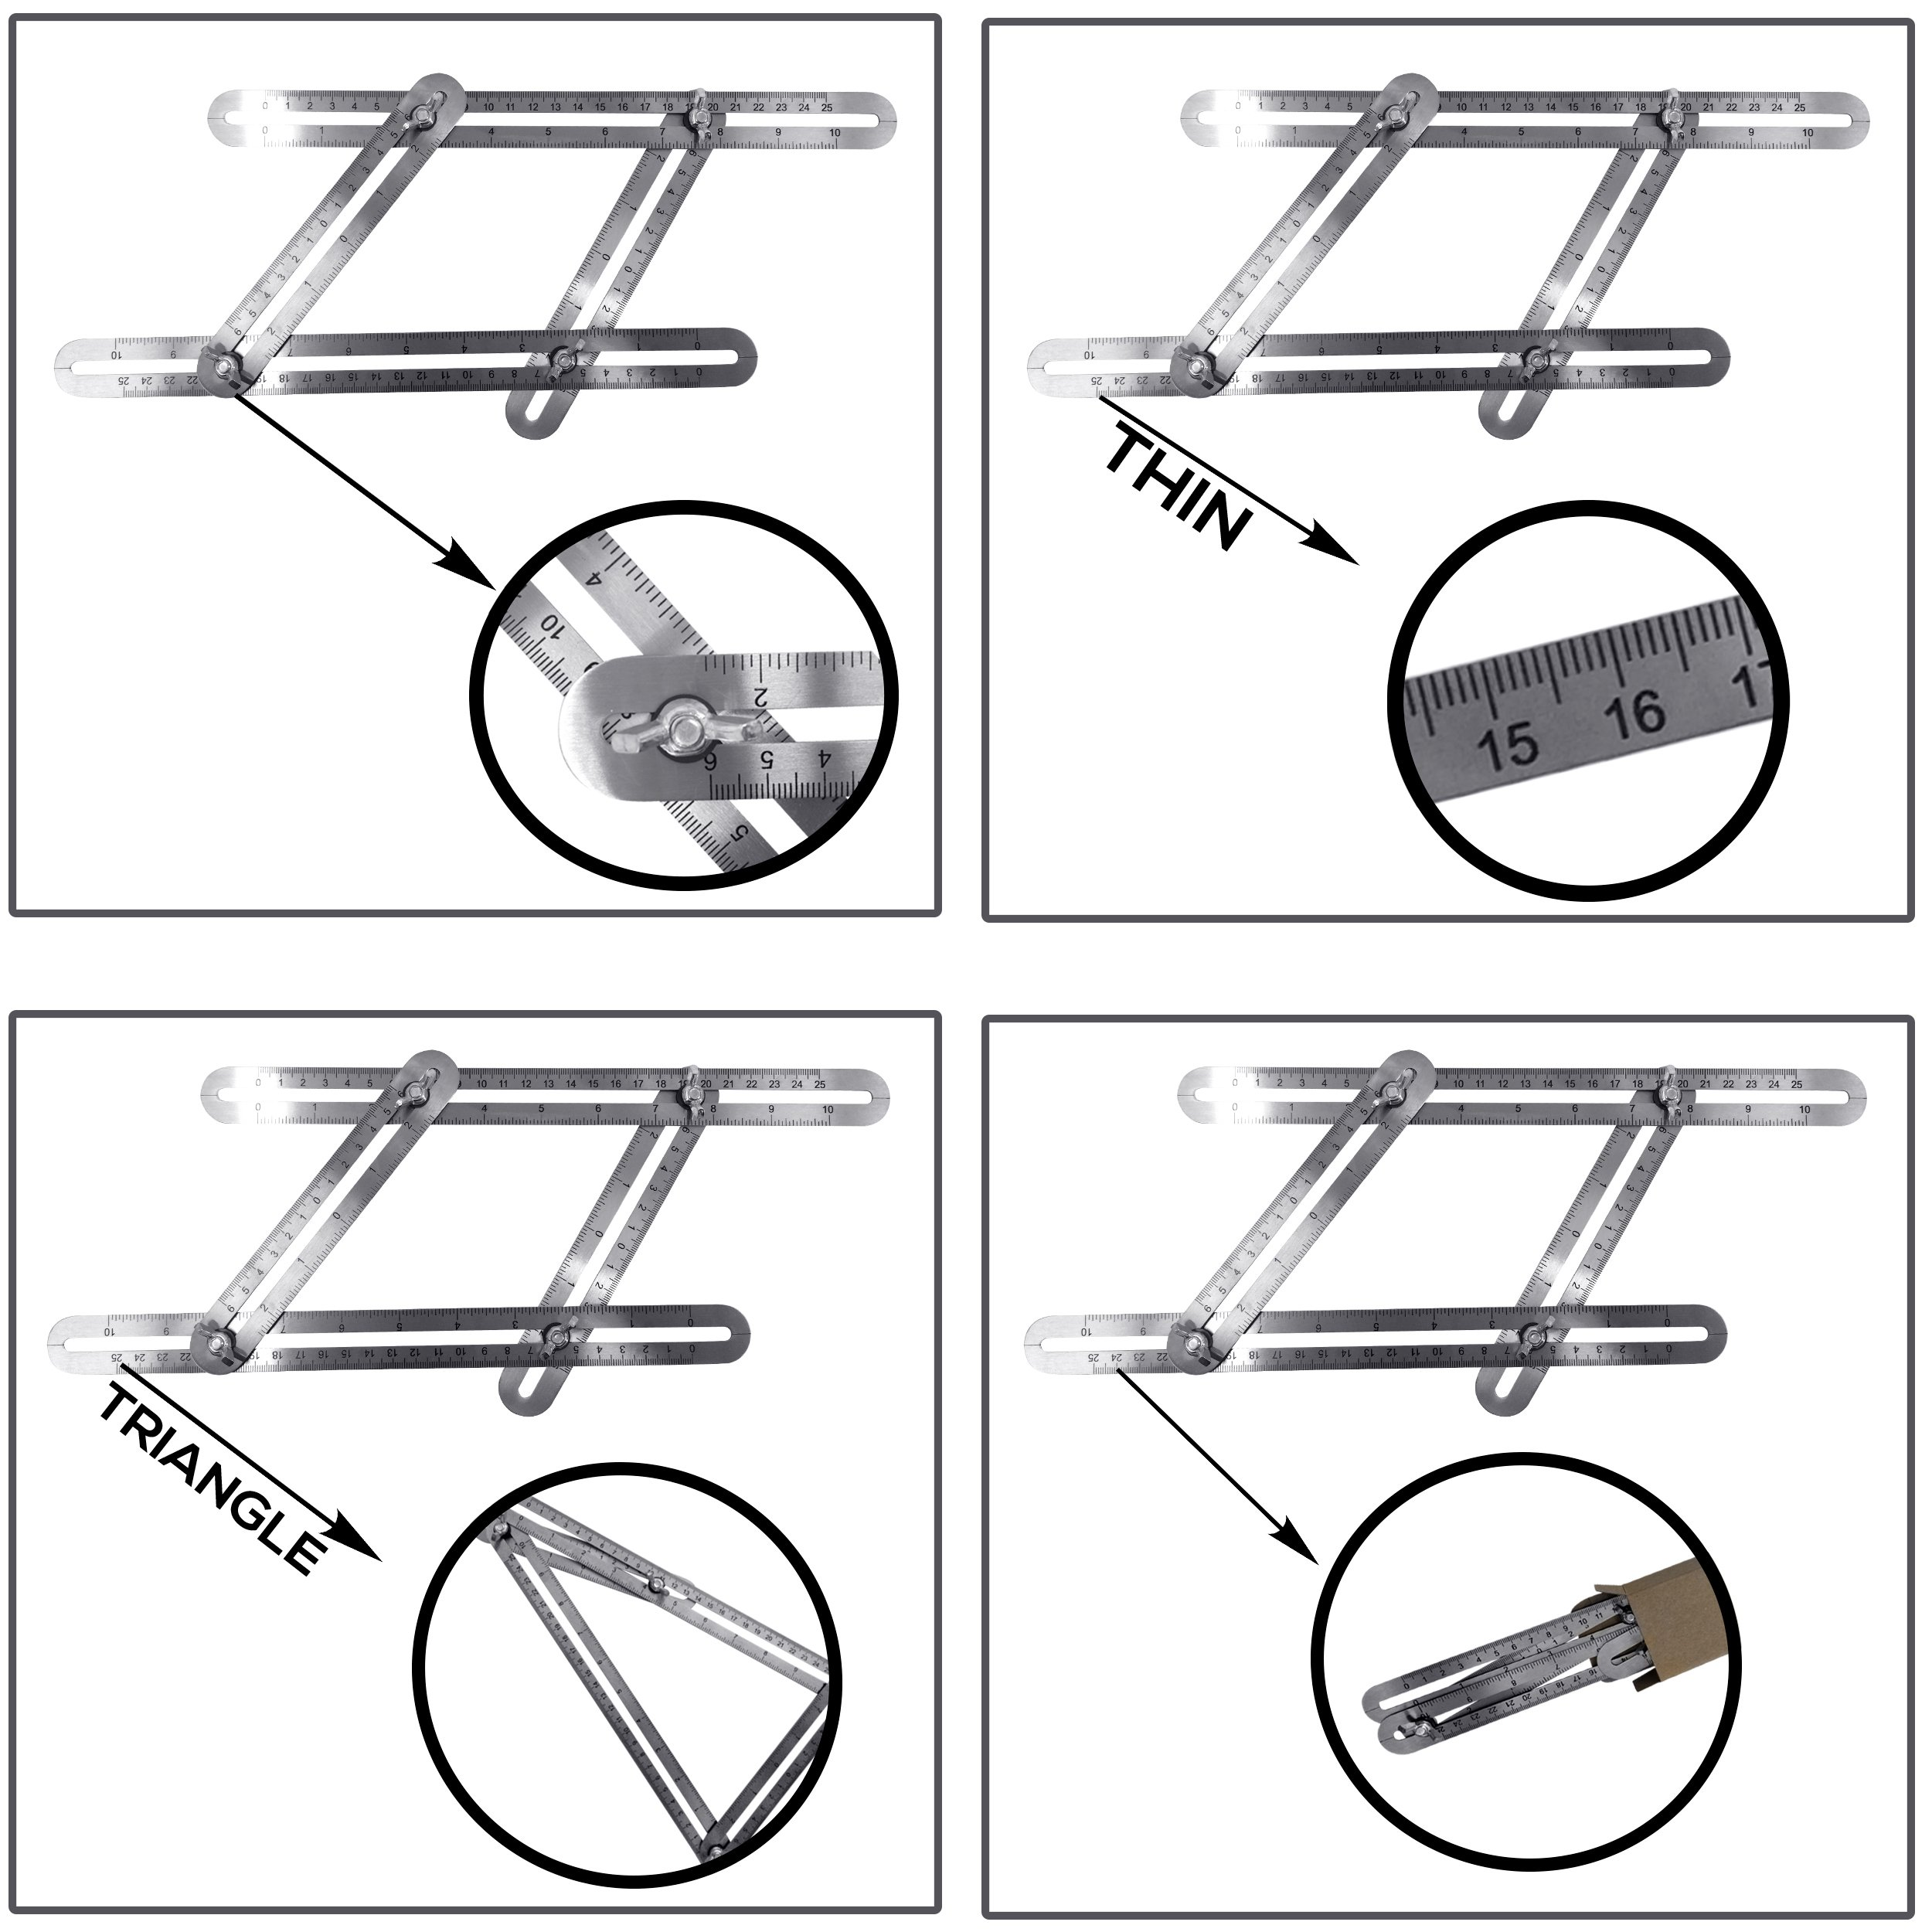 Upgraded Stainless Steel Multi-Angle Measuring Ruler Angle-izer Template Tool Construction Precision Steel Foldable For Carpenters Builders DIY 7Projects Measure Make Bulls Eyes Arches By ALLANGLES by ALLANGLES (Image #7)